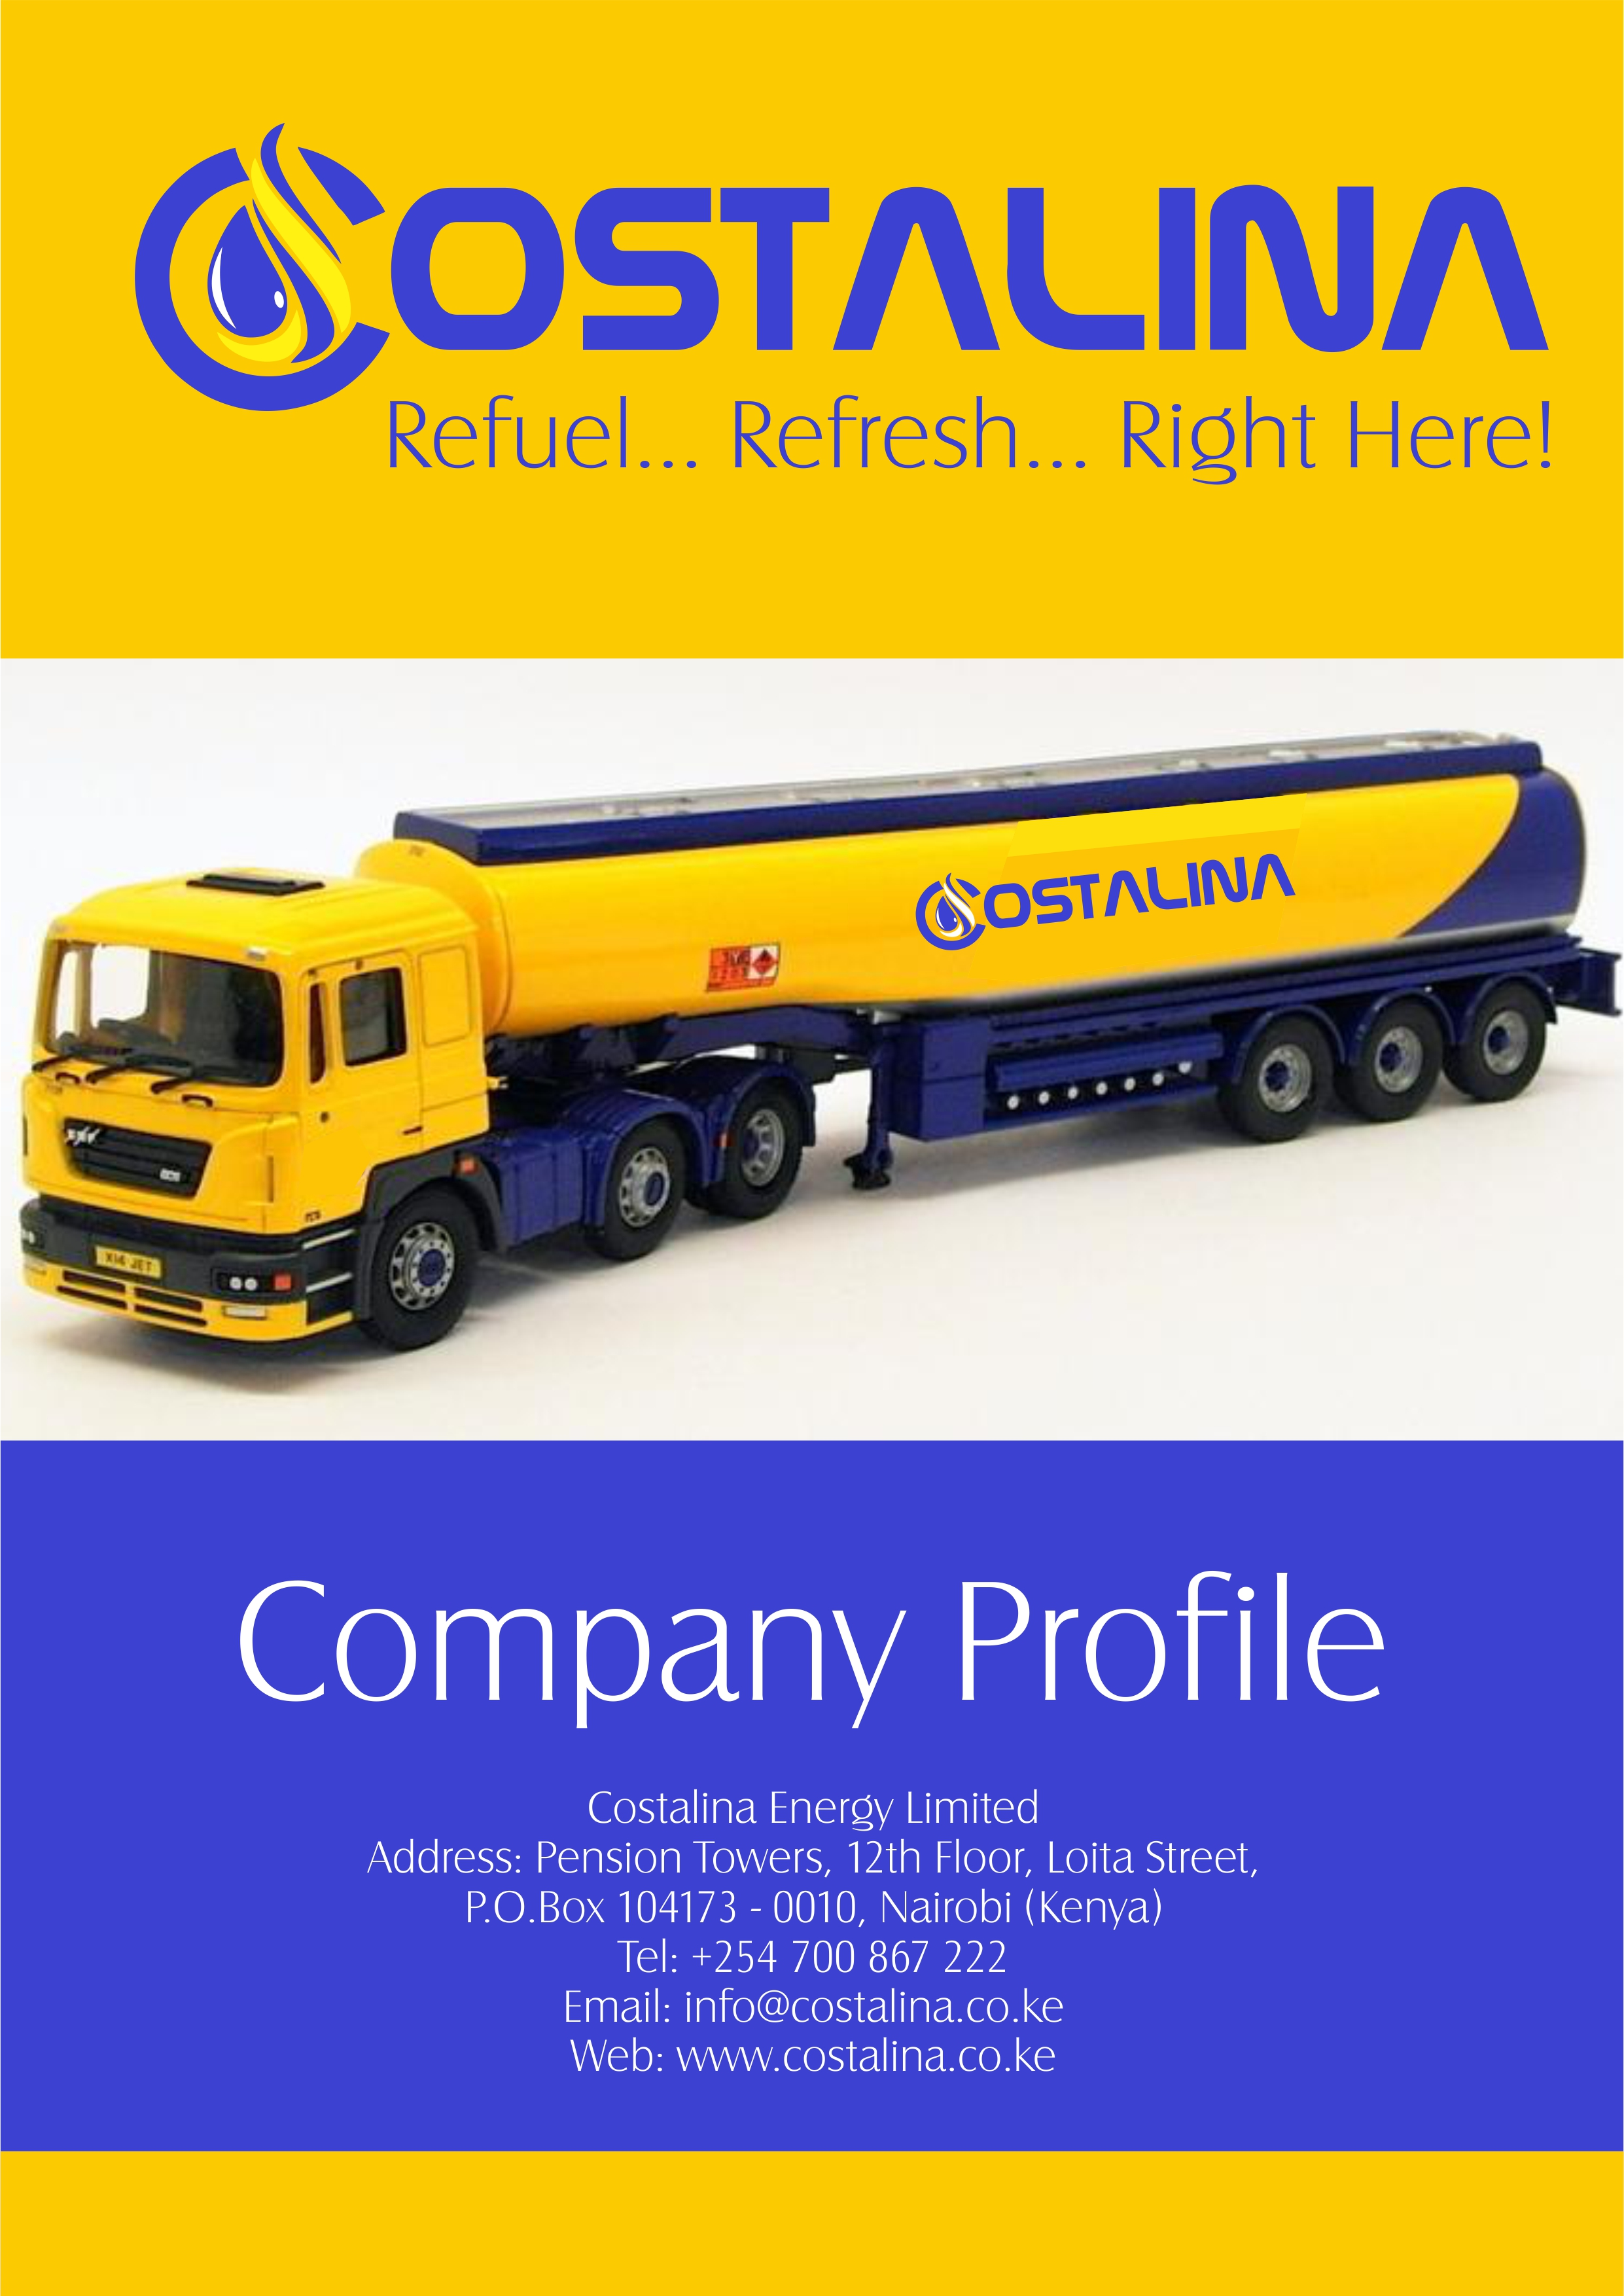 Cosstalina Energy Limited